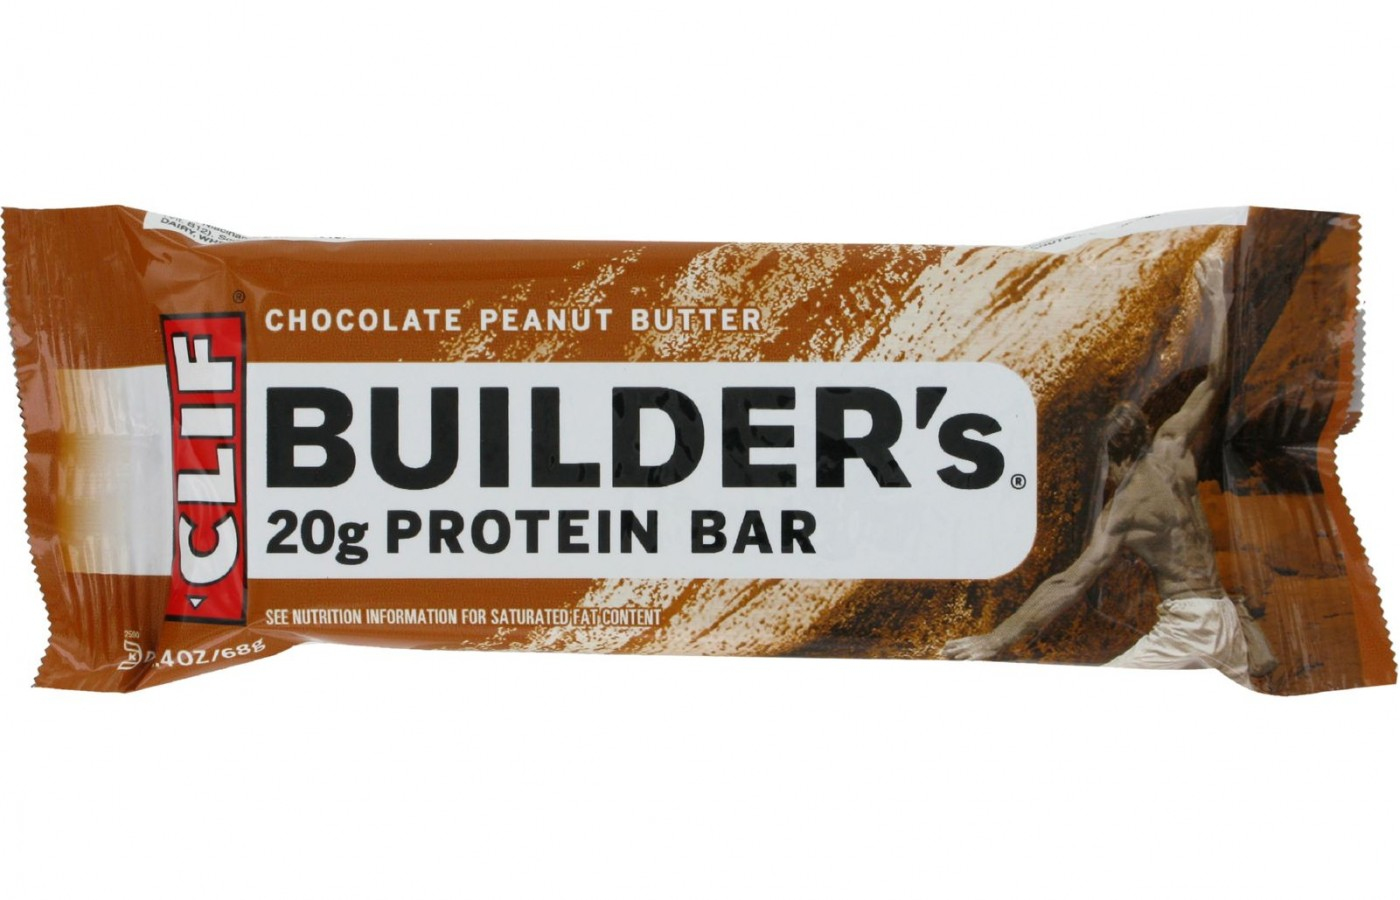 Chocolate Peanut Butter is one of the flavor favorites of these Clif Builder's Bars,